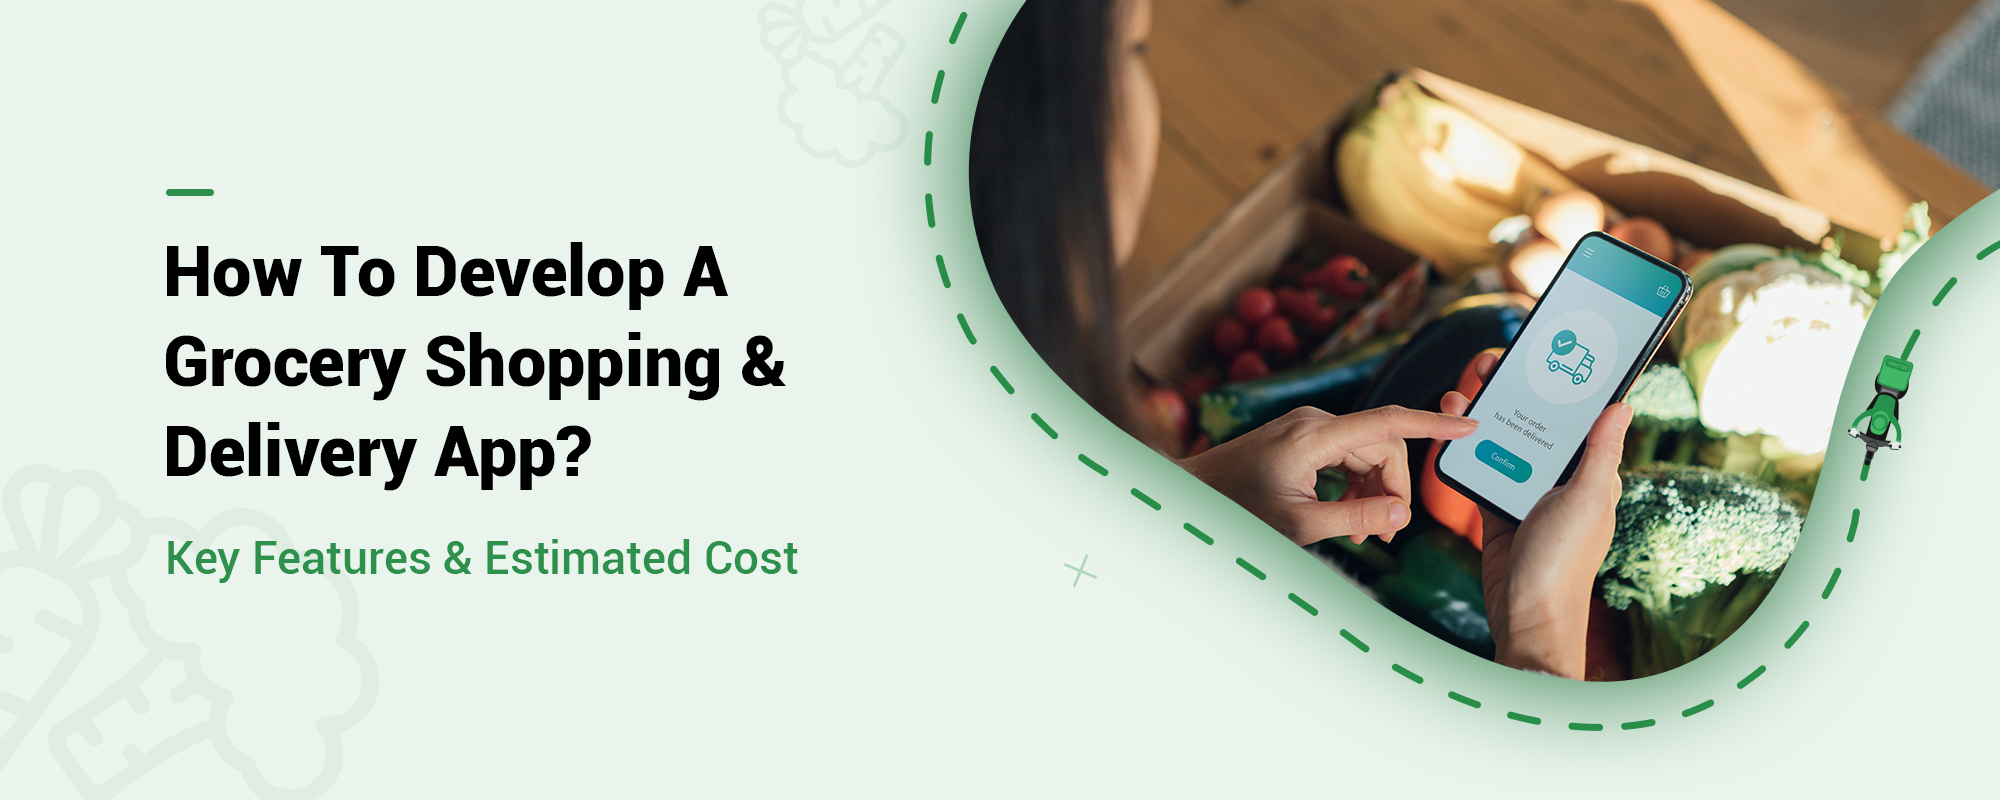 Grocery Delivery App Development: Essential Features & Cost Estimation